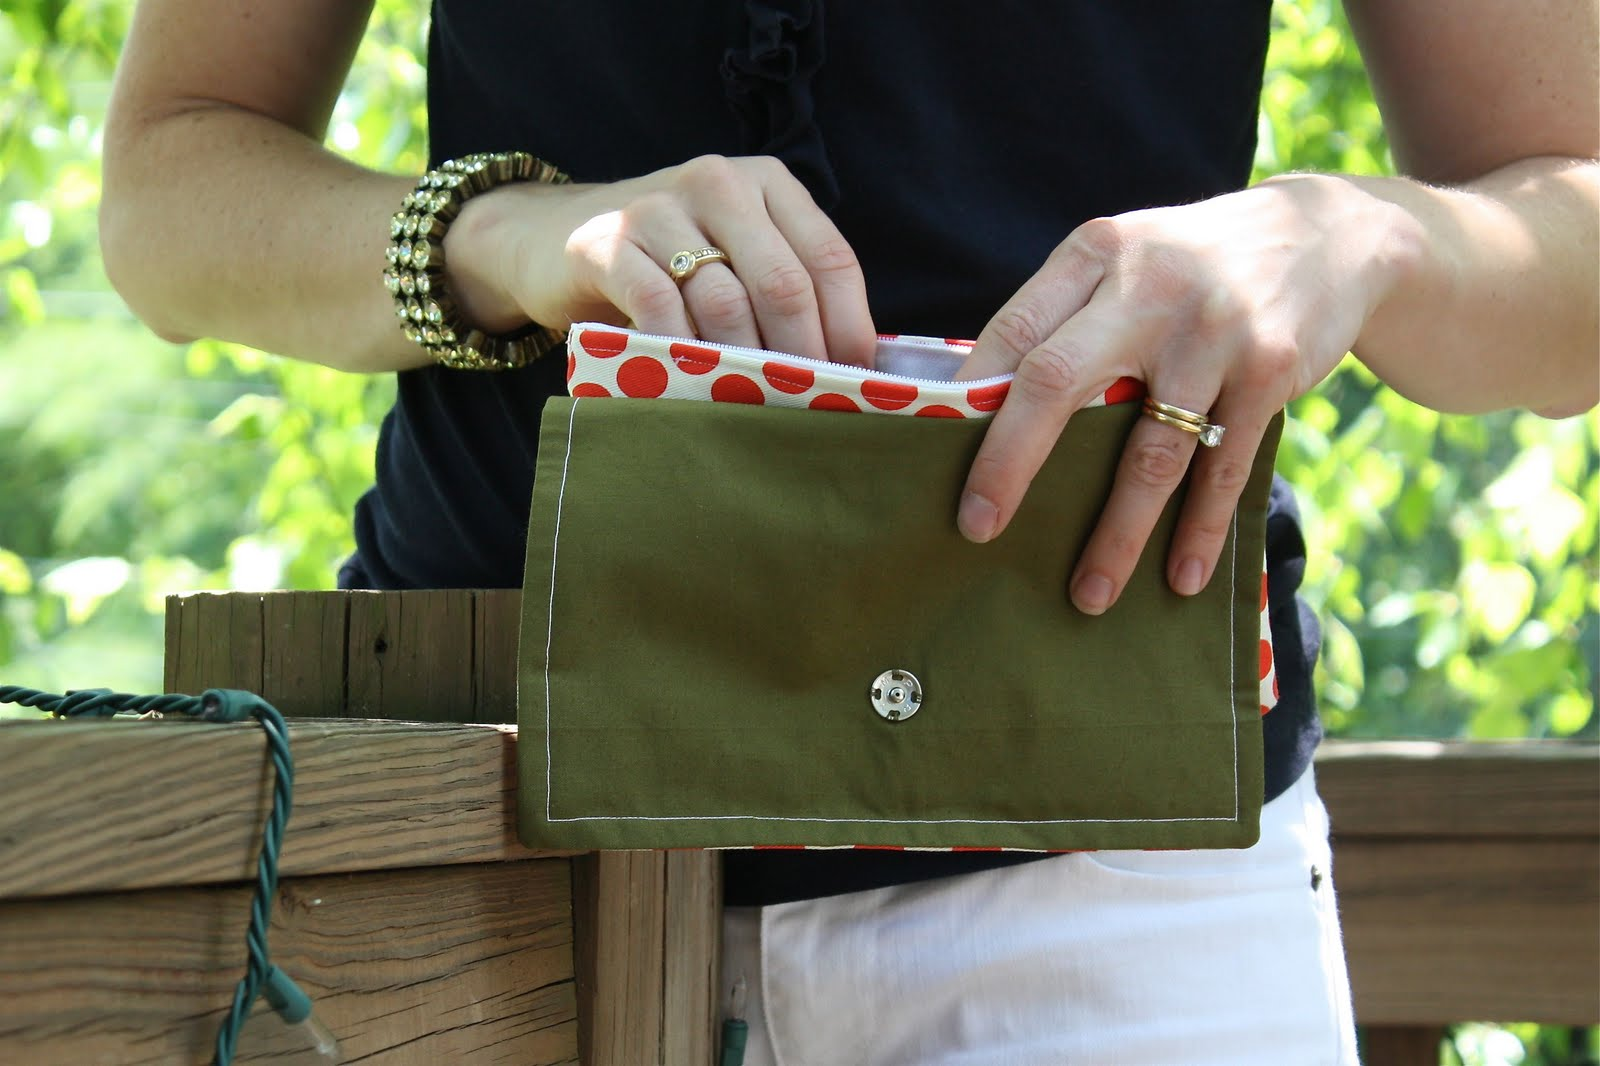 DIY Clutch Bag Free Sewing Pattern & Tutorial